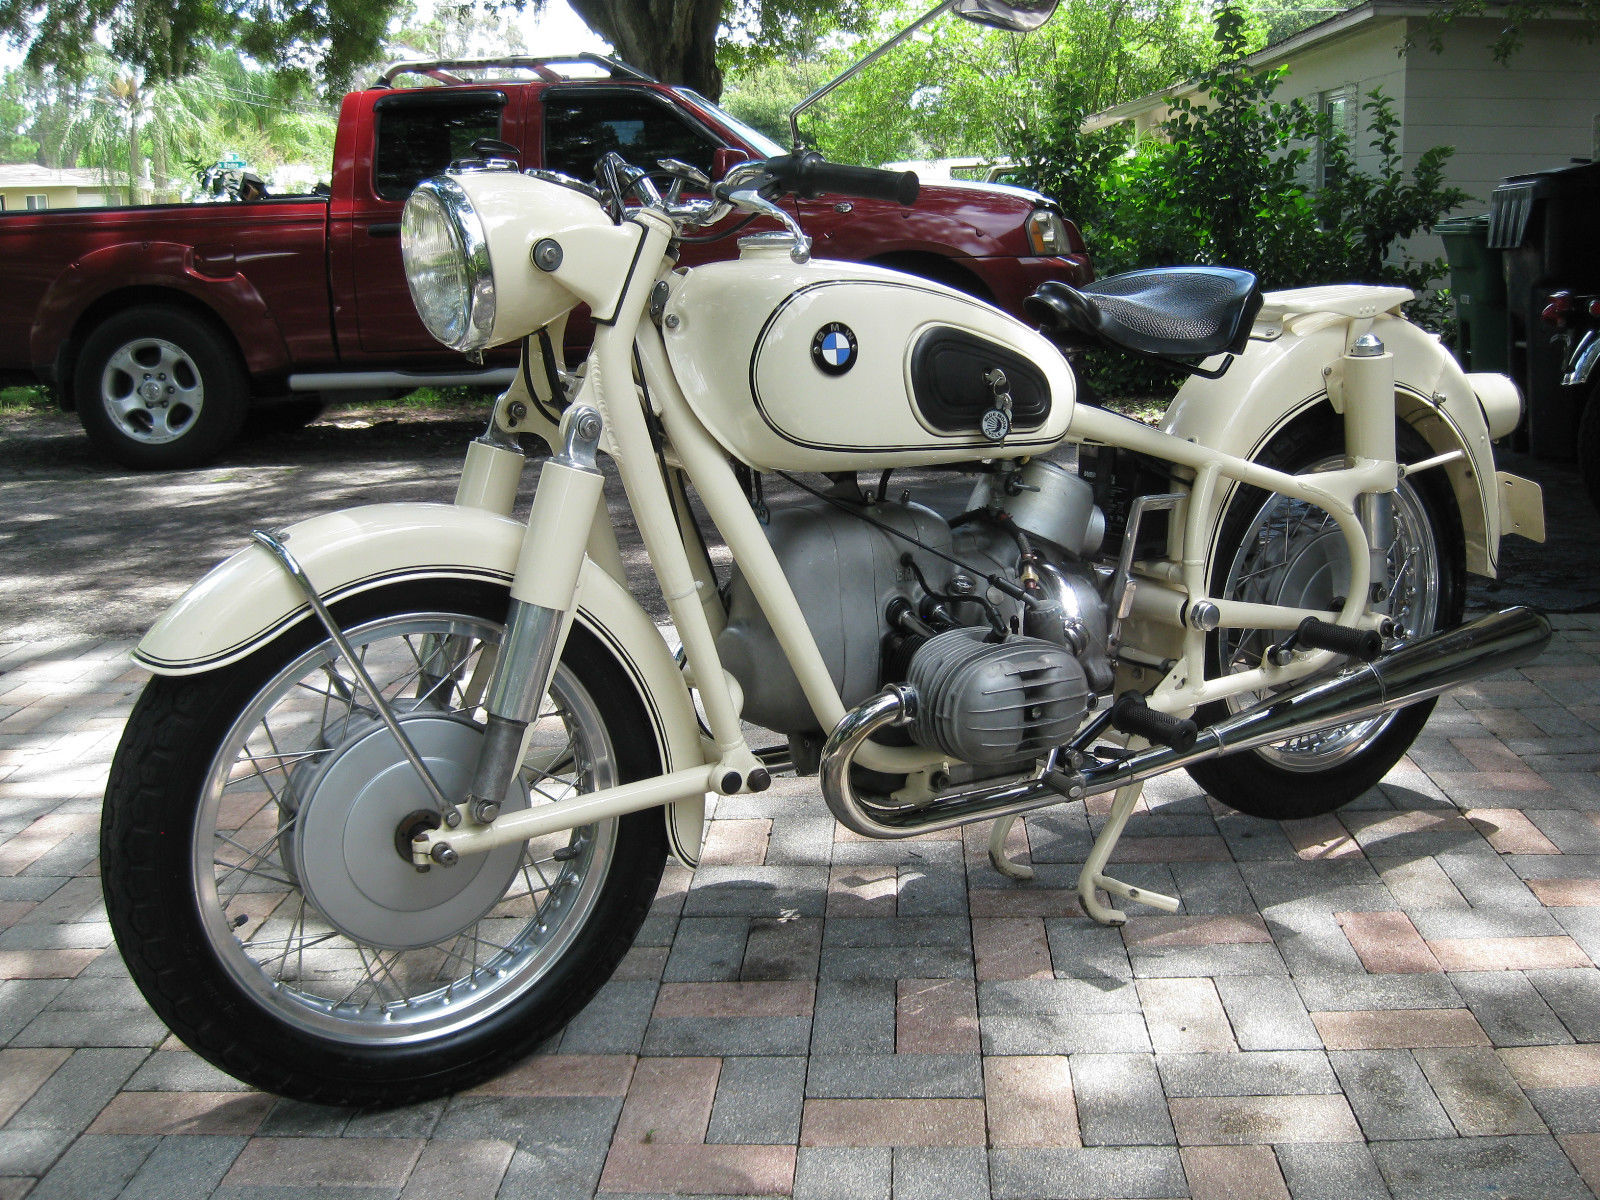 Restored Bmw R50 2 1964 Photographs At Classic Bikes Restored Bikes Restored